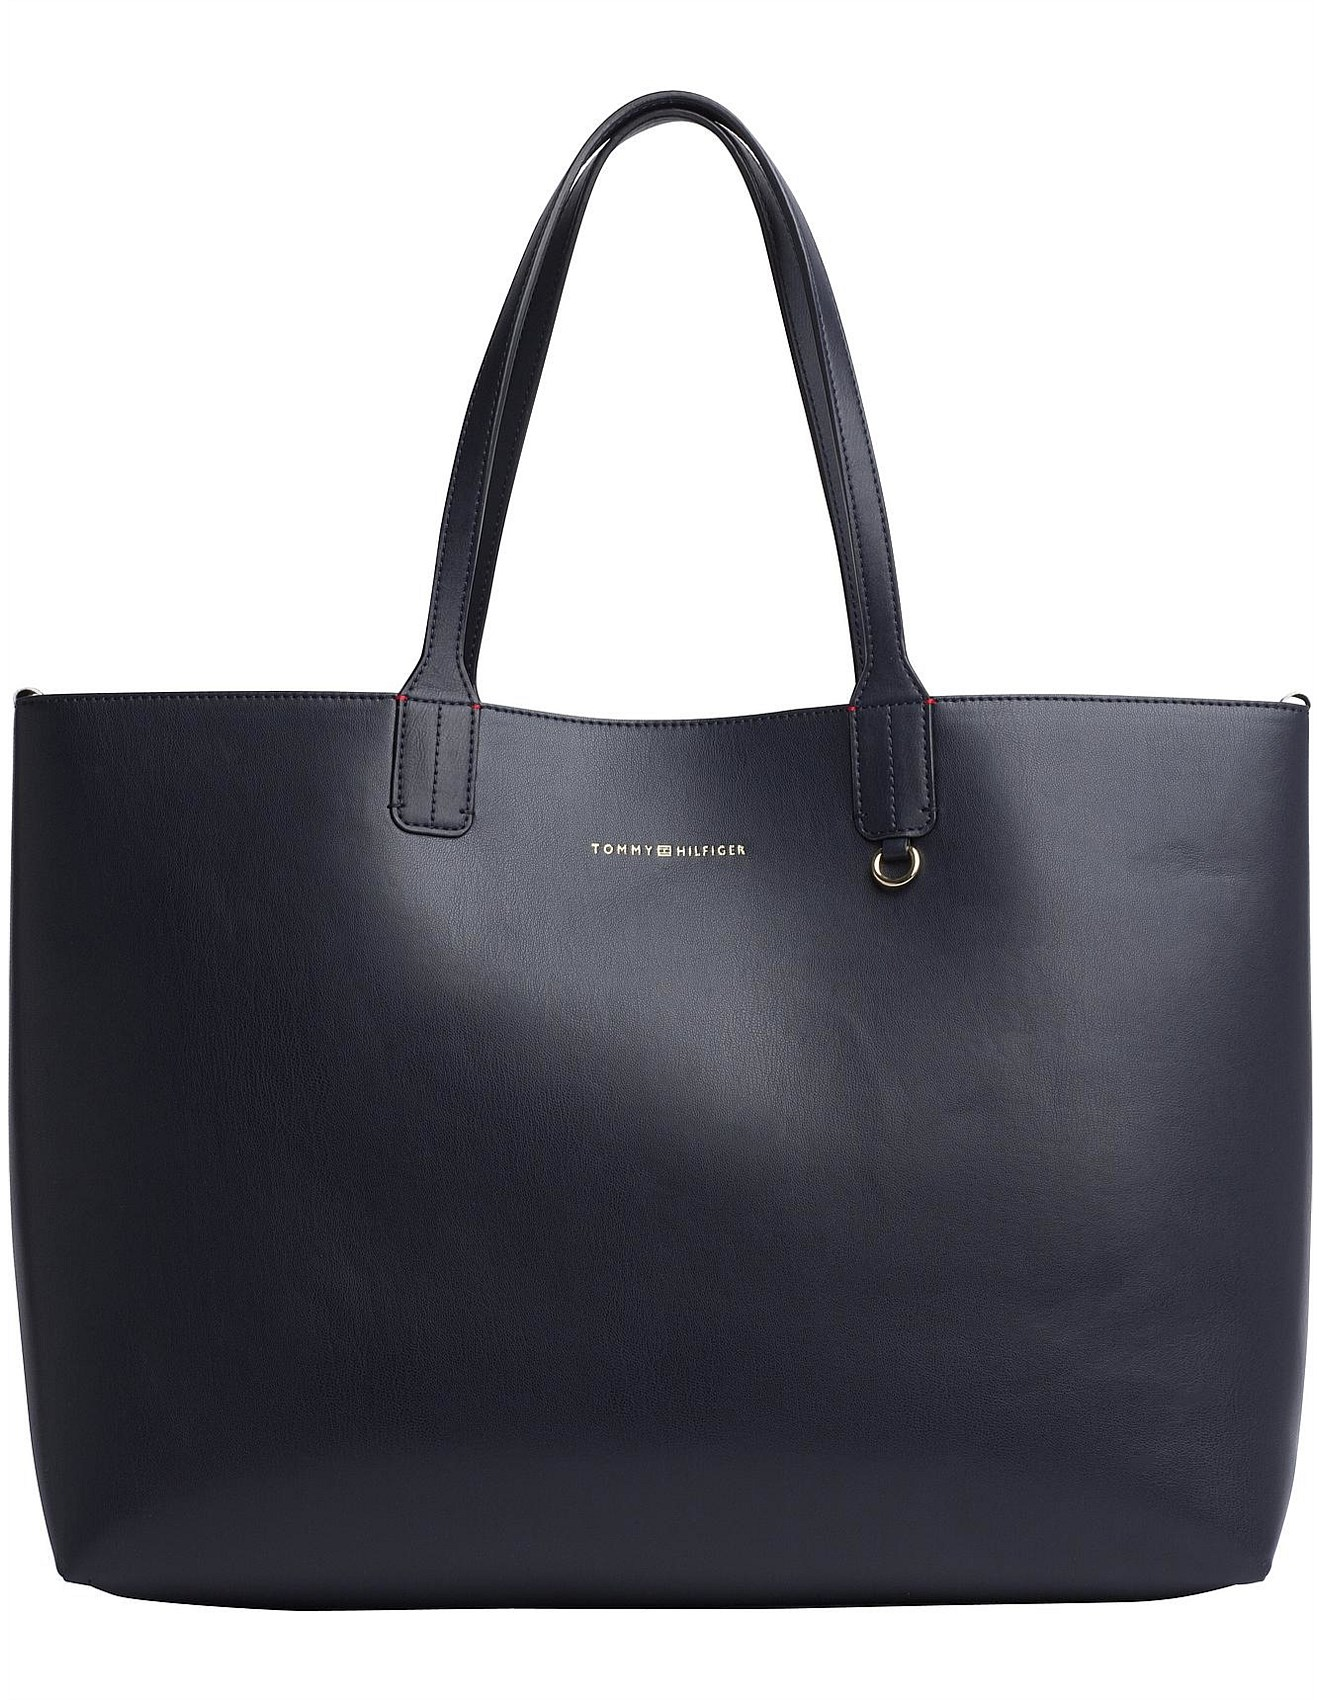 44bbfd0bfd Women's Tote Bags | Buy Leather, Canvas Tote Bags | David Jones ...